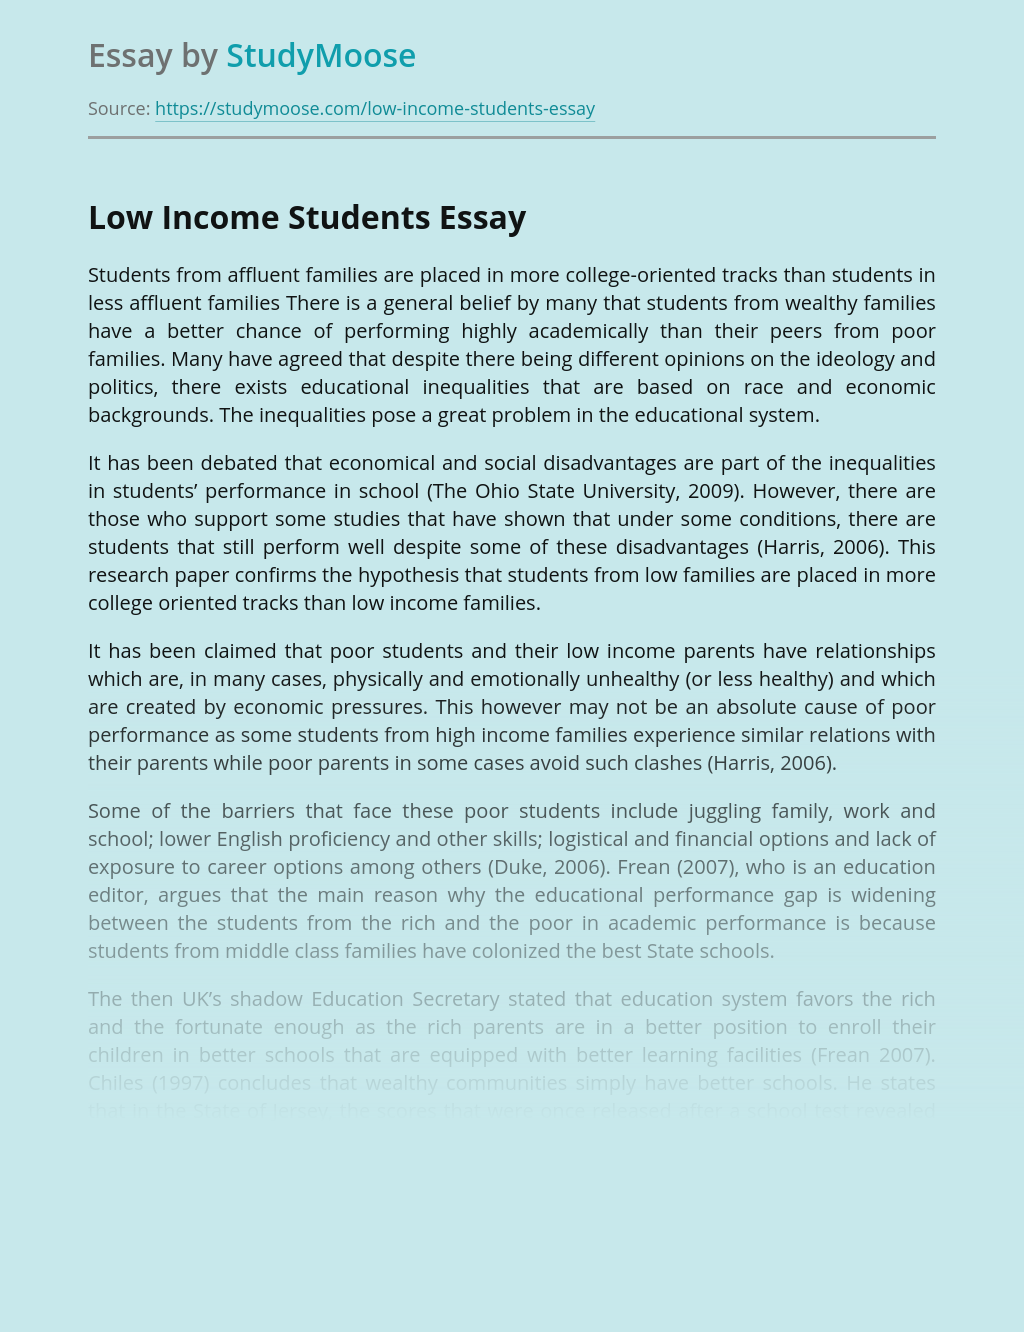 Barriers to College Completion for Low-Income Students